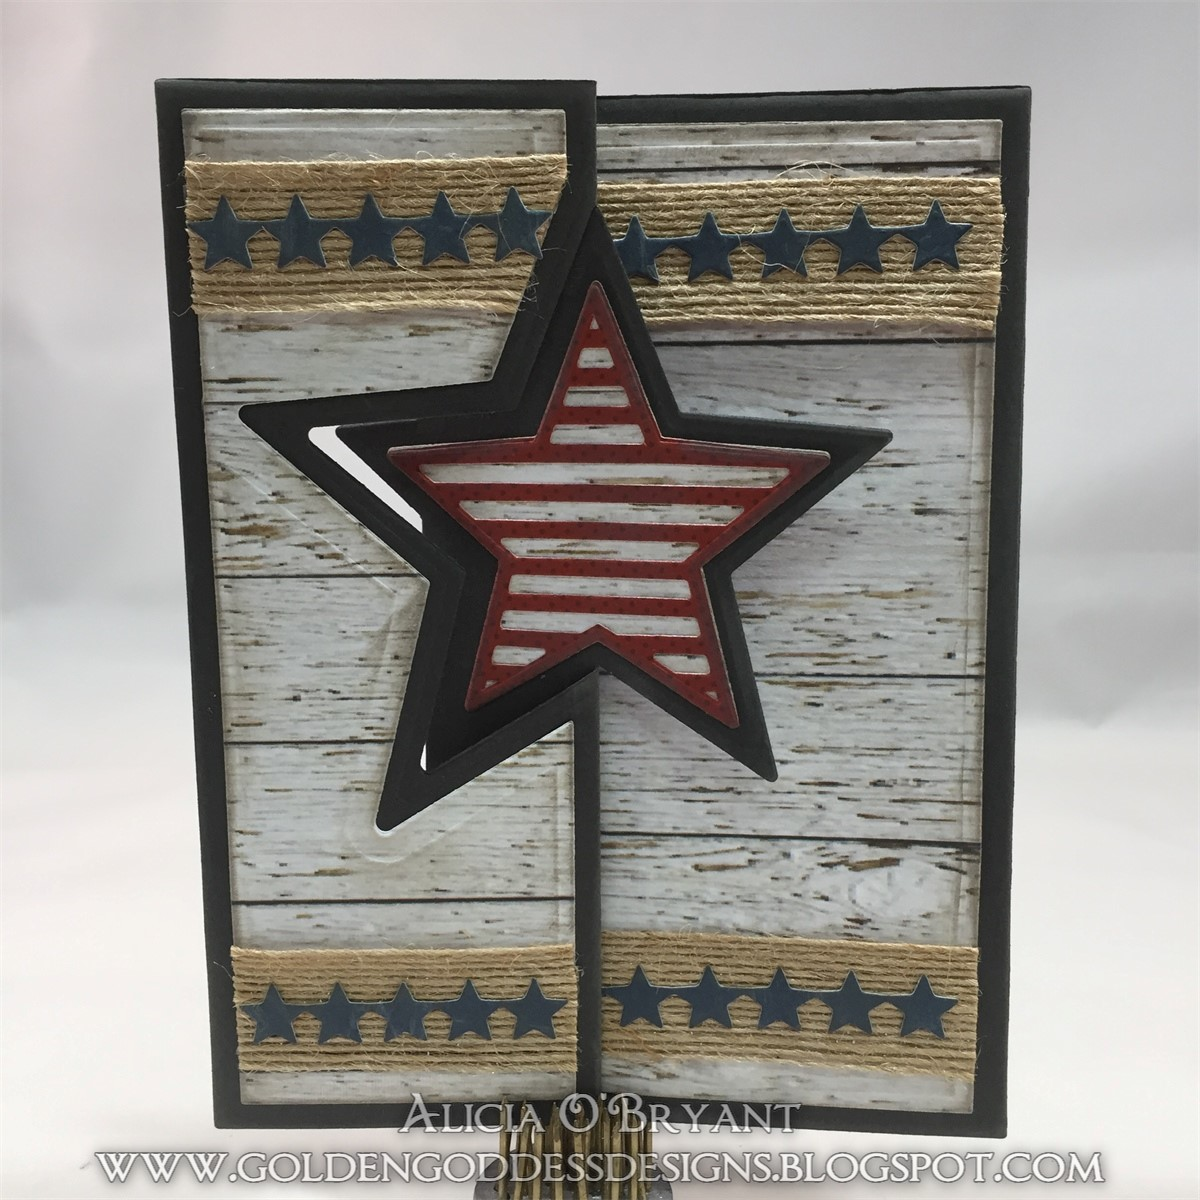 USA themed scrapbooked card featuring Quick Quotes designed by Alicia O'Bryant